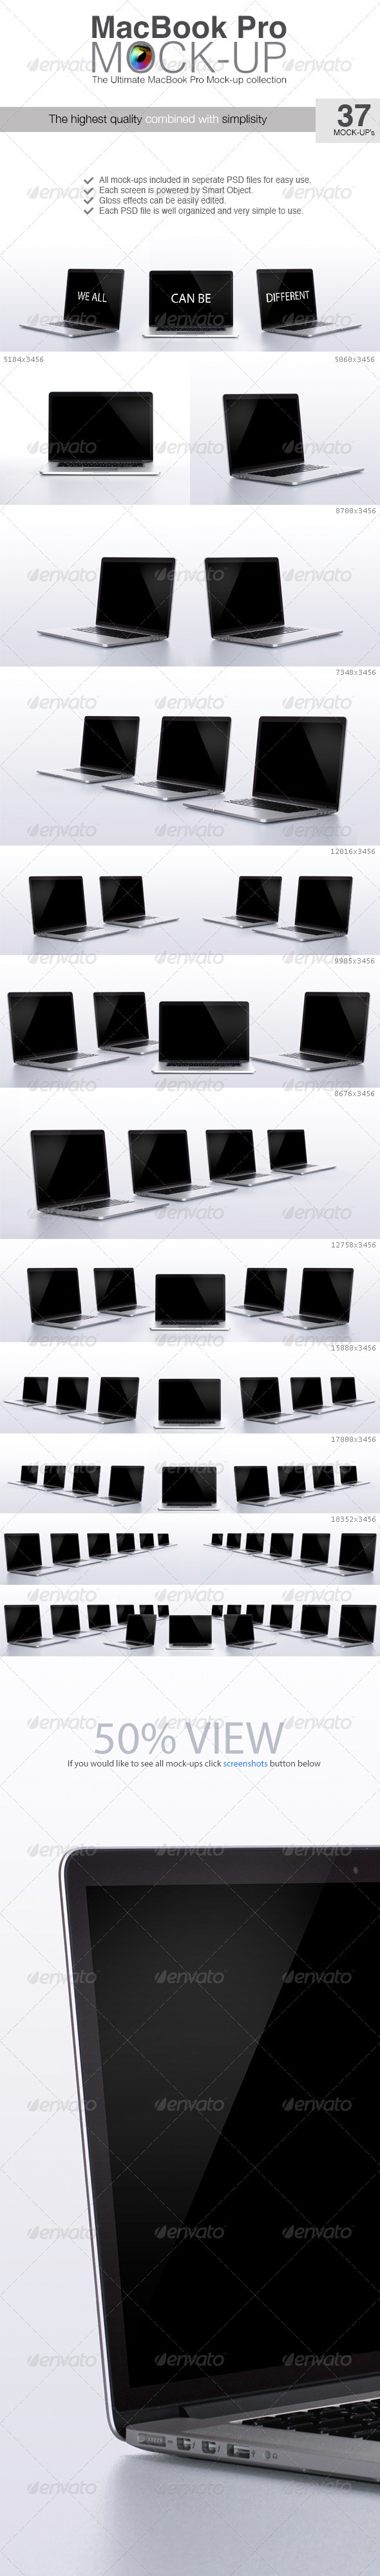 GraphicRiver Macbook Pro Mock-up 3715193